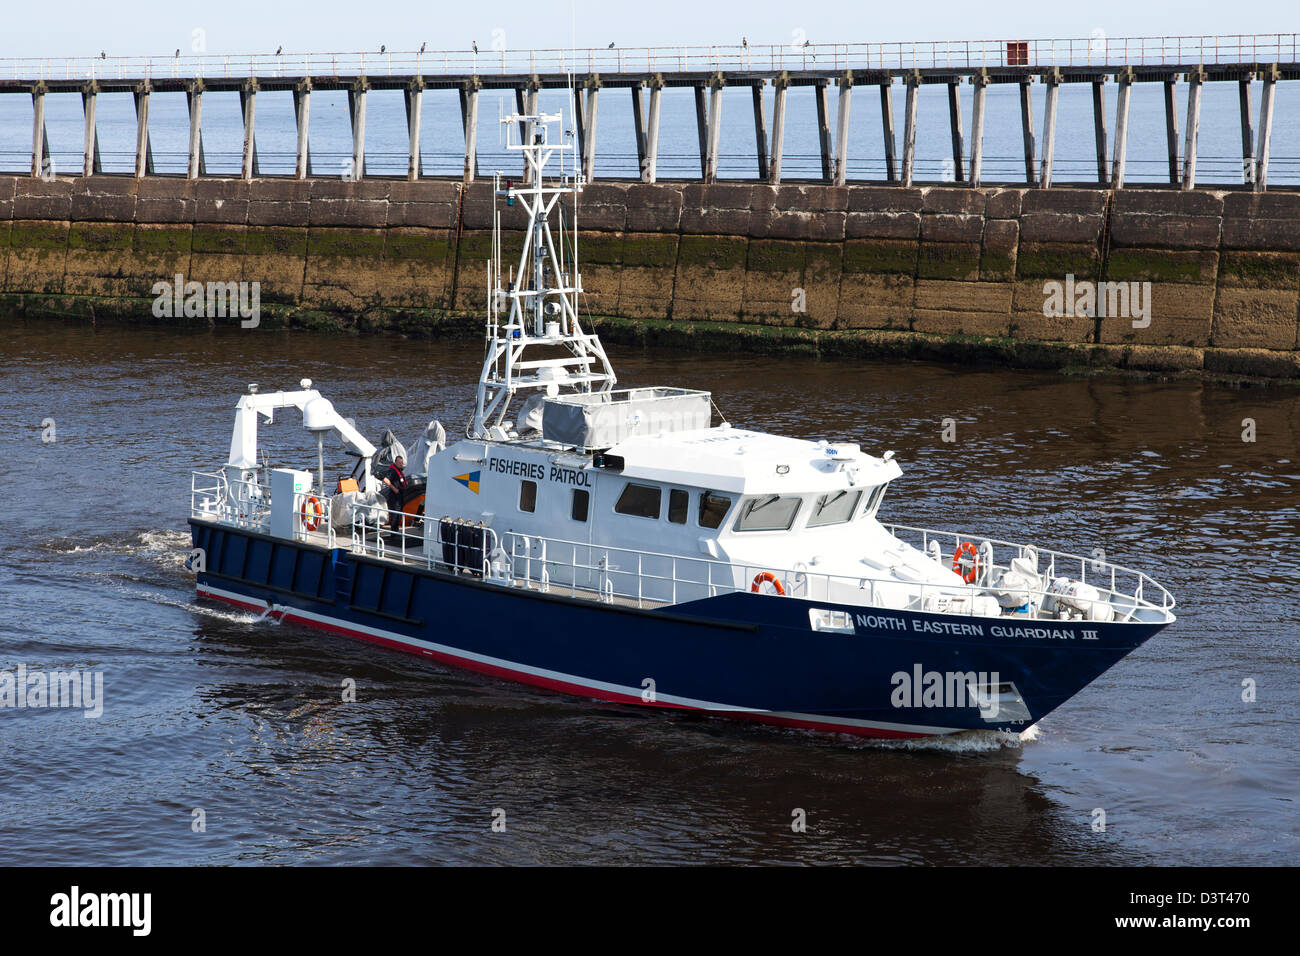 The North Eastern Guardian III Fisheries Protection Patrol vessel in Whitby Harbour, North Yorkshire, England, UK. - Stock Image